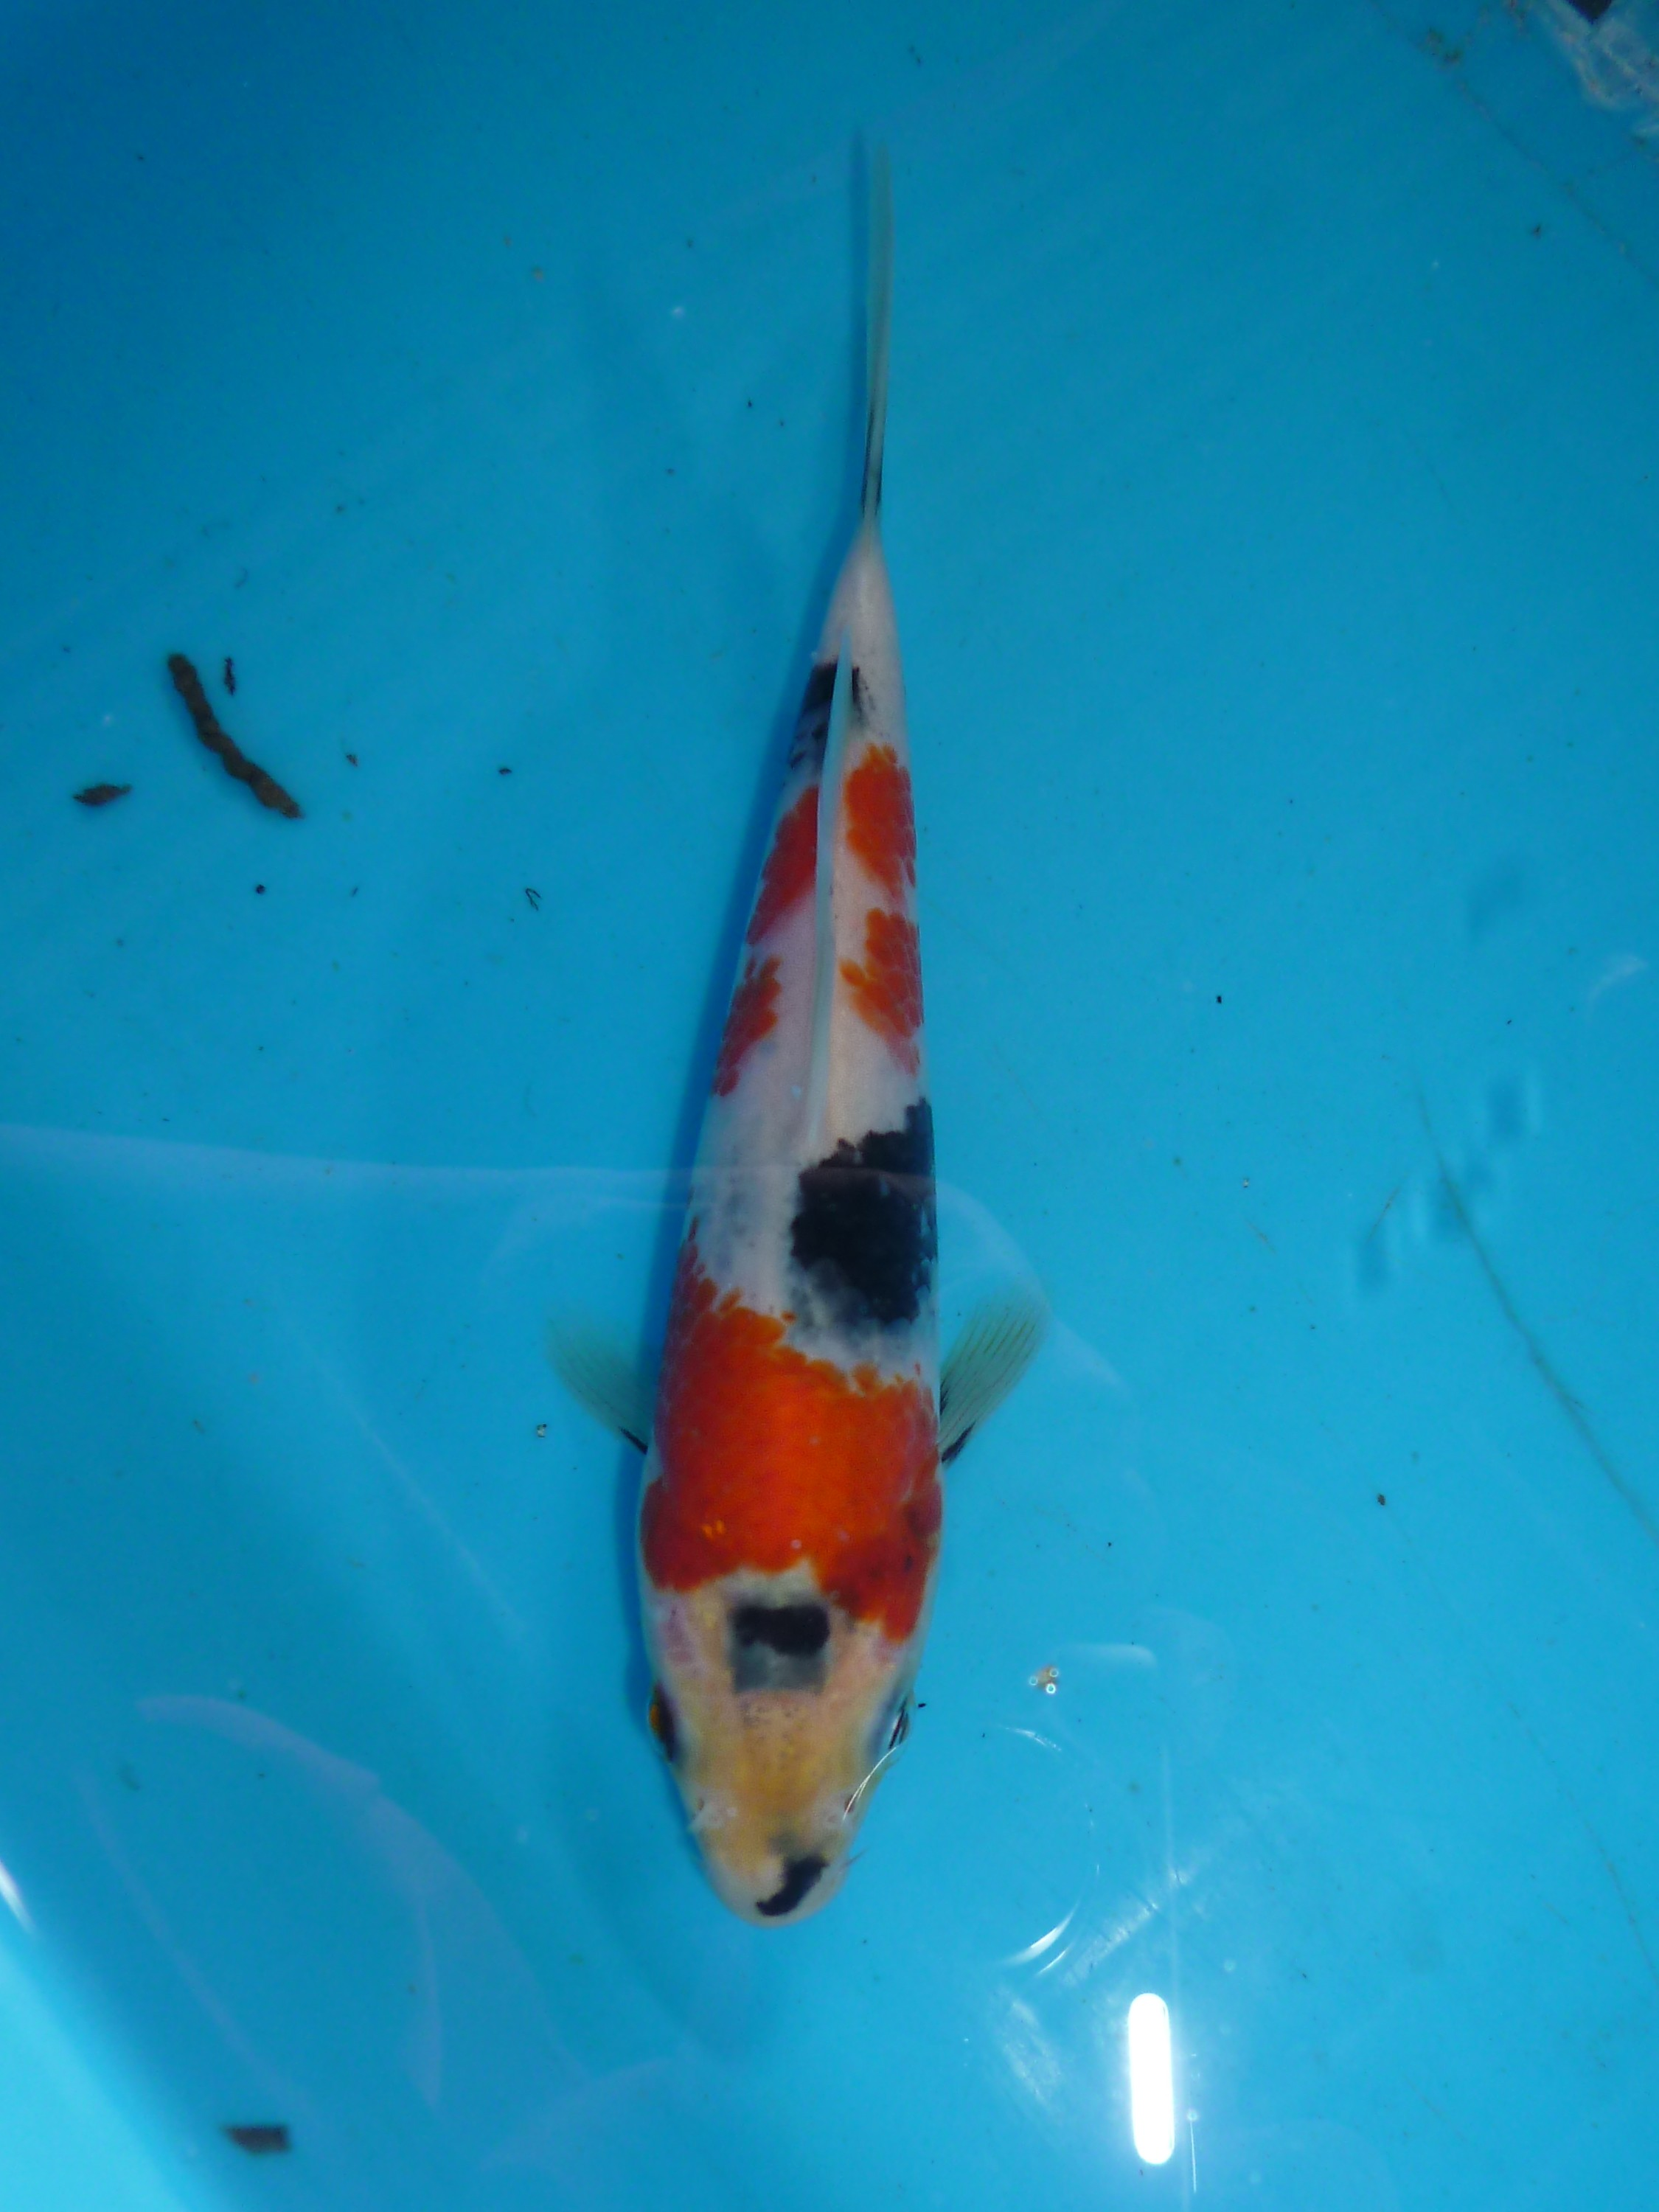 Marugen koi farm show quality showa koi fishes for sale for Koi carp farm